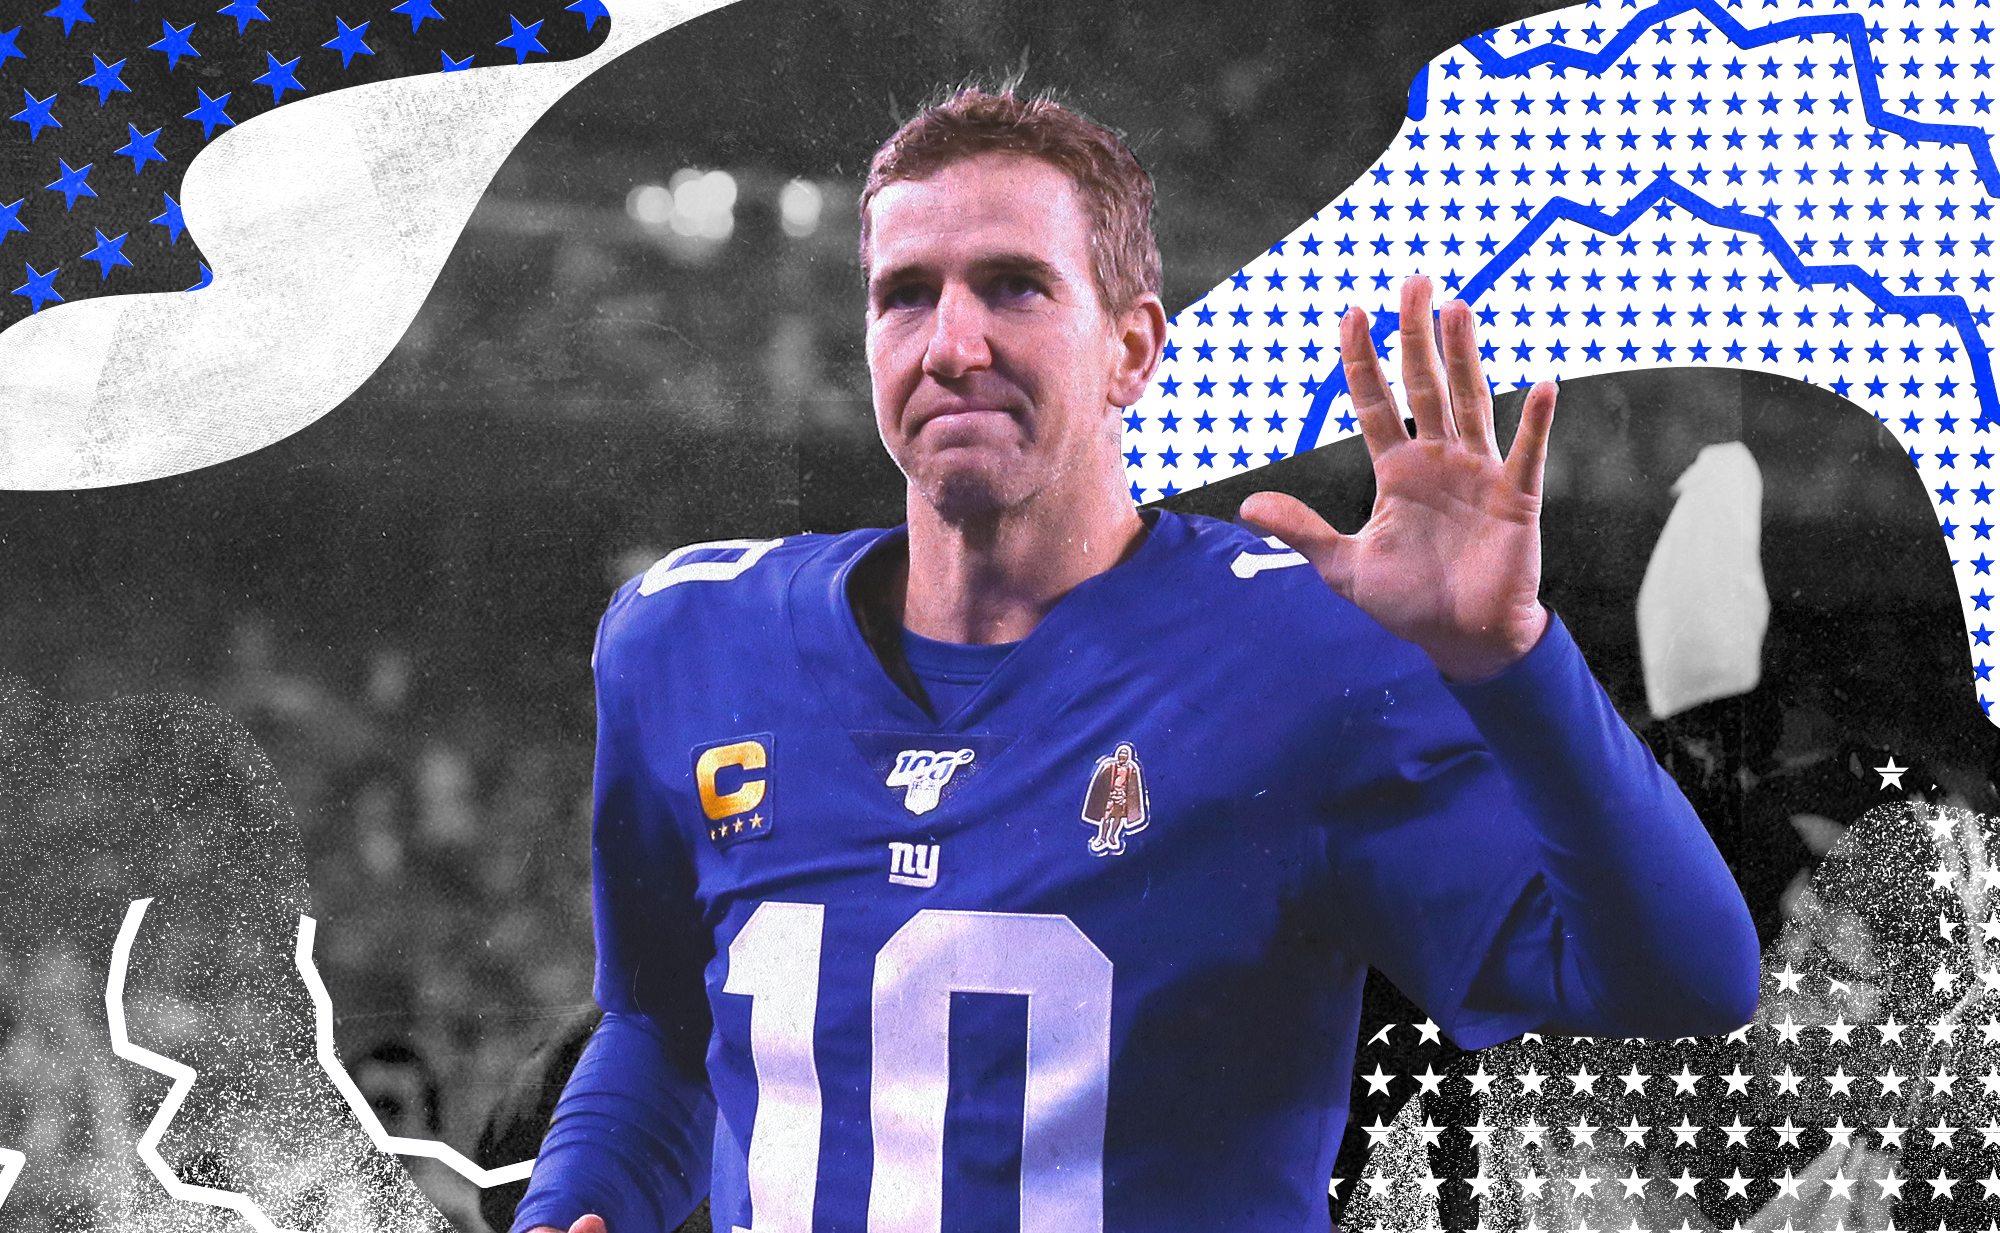 Giants QB Eli Manning waves to the crowd in his final NFL game, superimposed on a blue, gray, and white background with stars